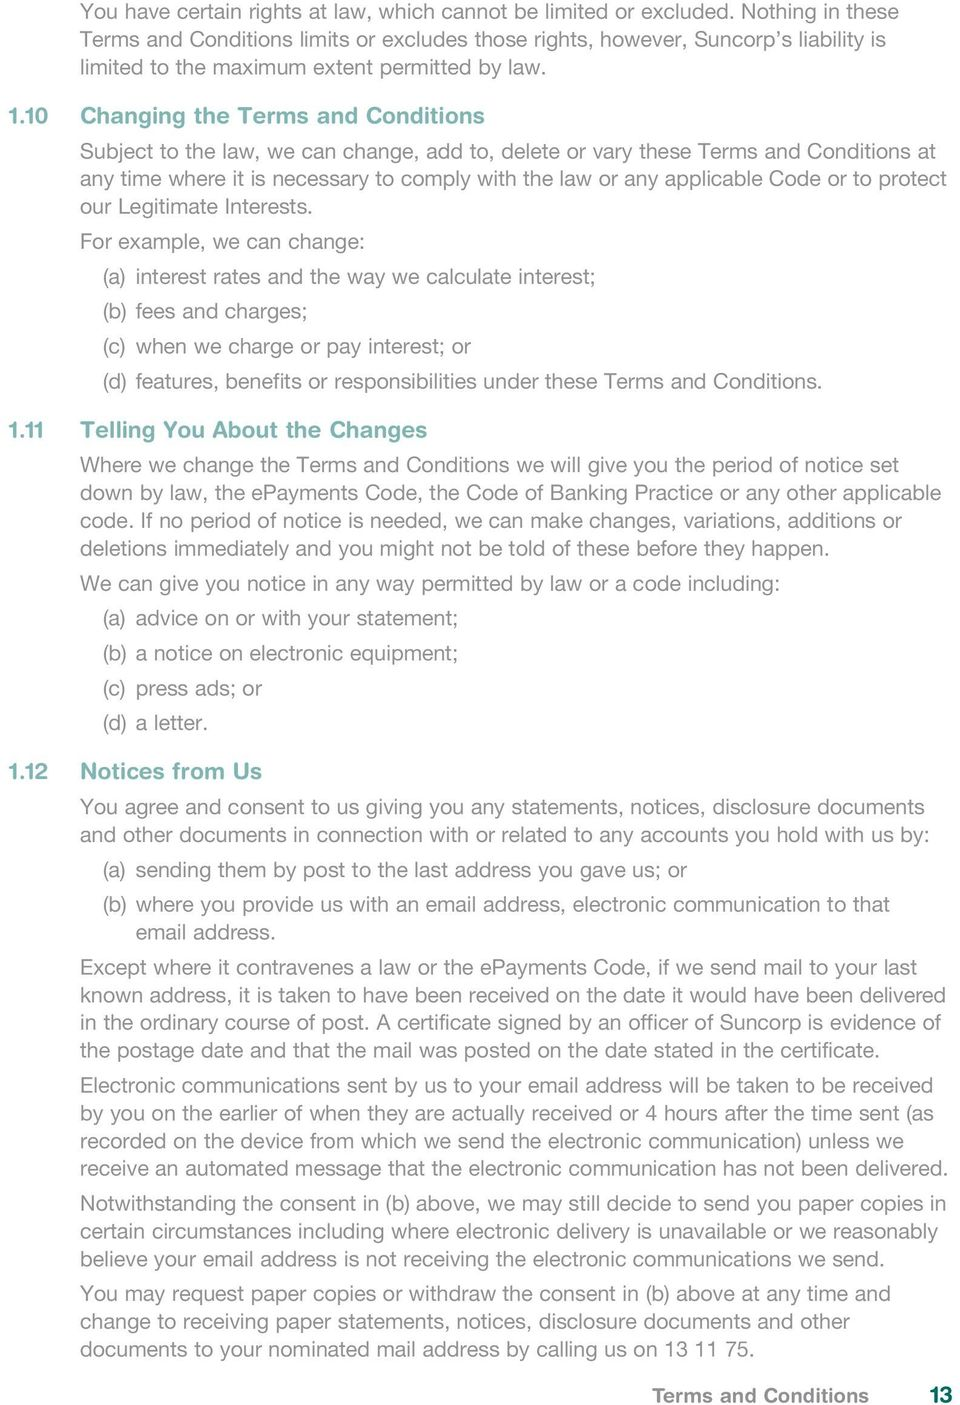 10 Changing the Terms and Conditions Subject to the law, we can change, add to, delete or vary these Terms and Conditions at any time where it is necessary to comply with the law or any applicable